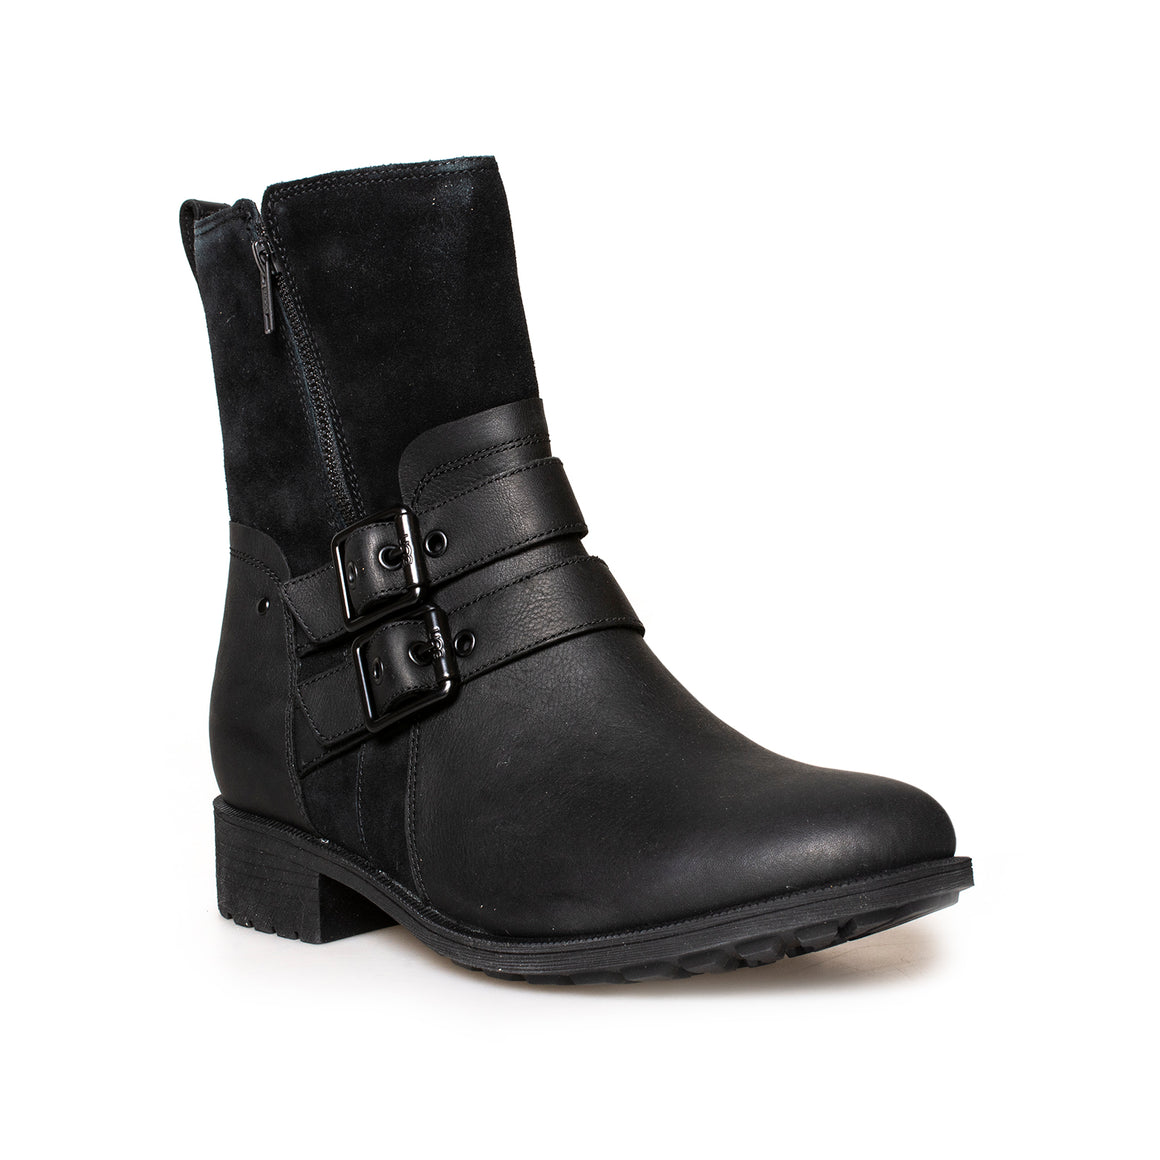 UGG Wilde Black Boots - Women's